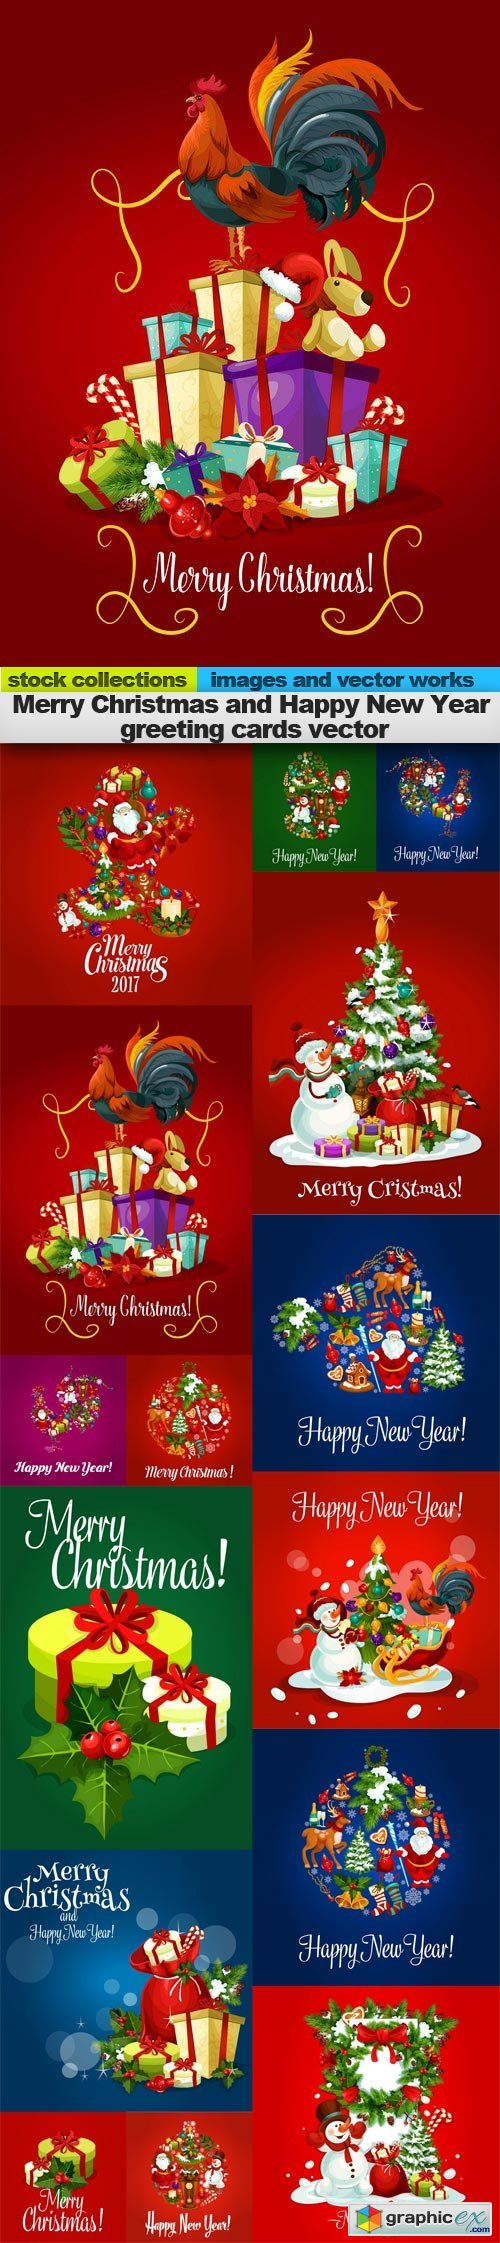 Merry Christmas and Happy New Year greeting cards vector, 15 x EPS